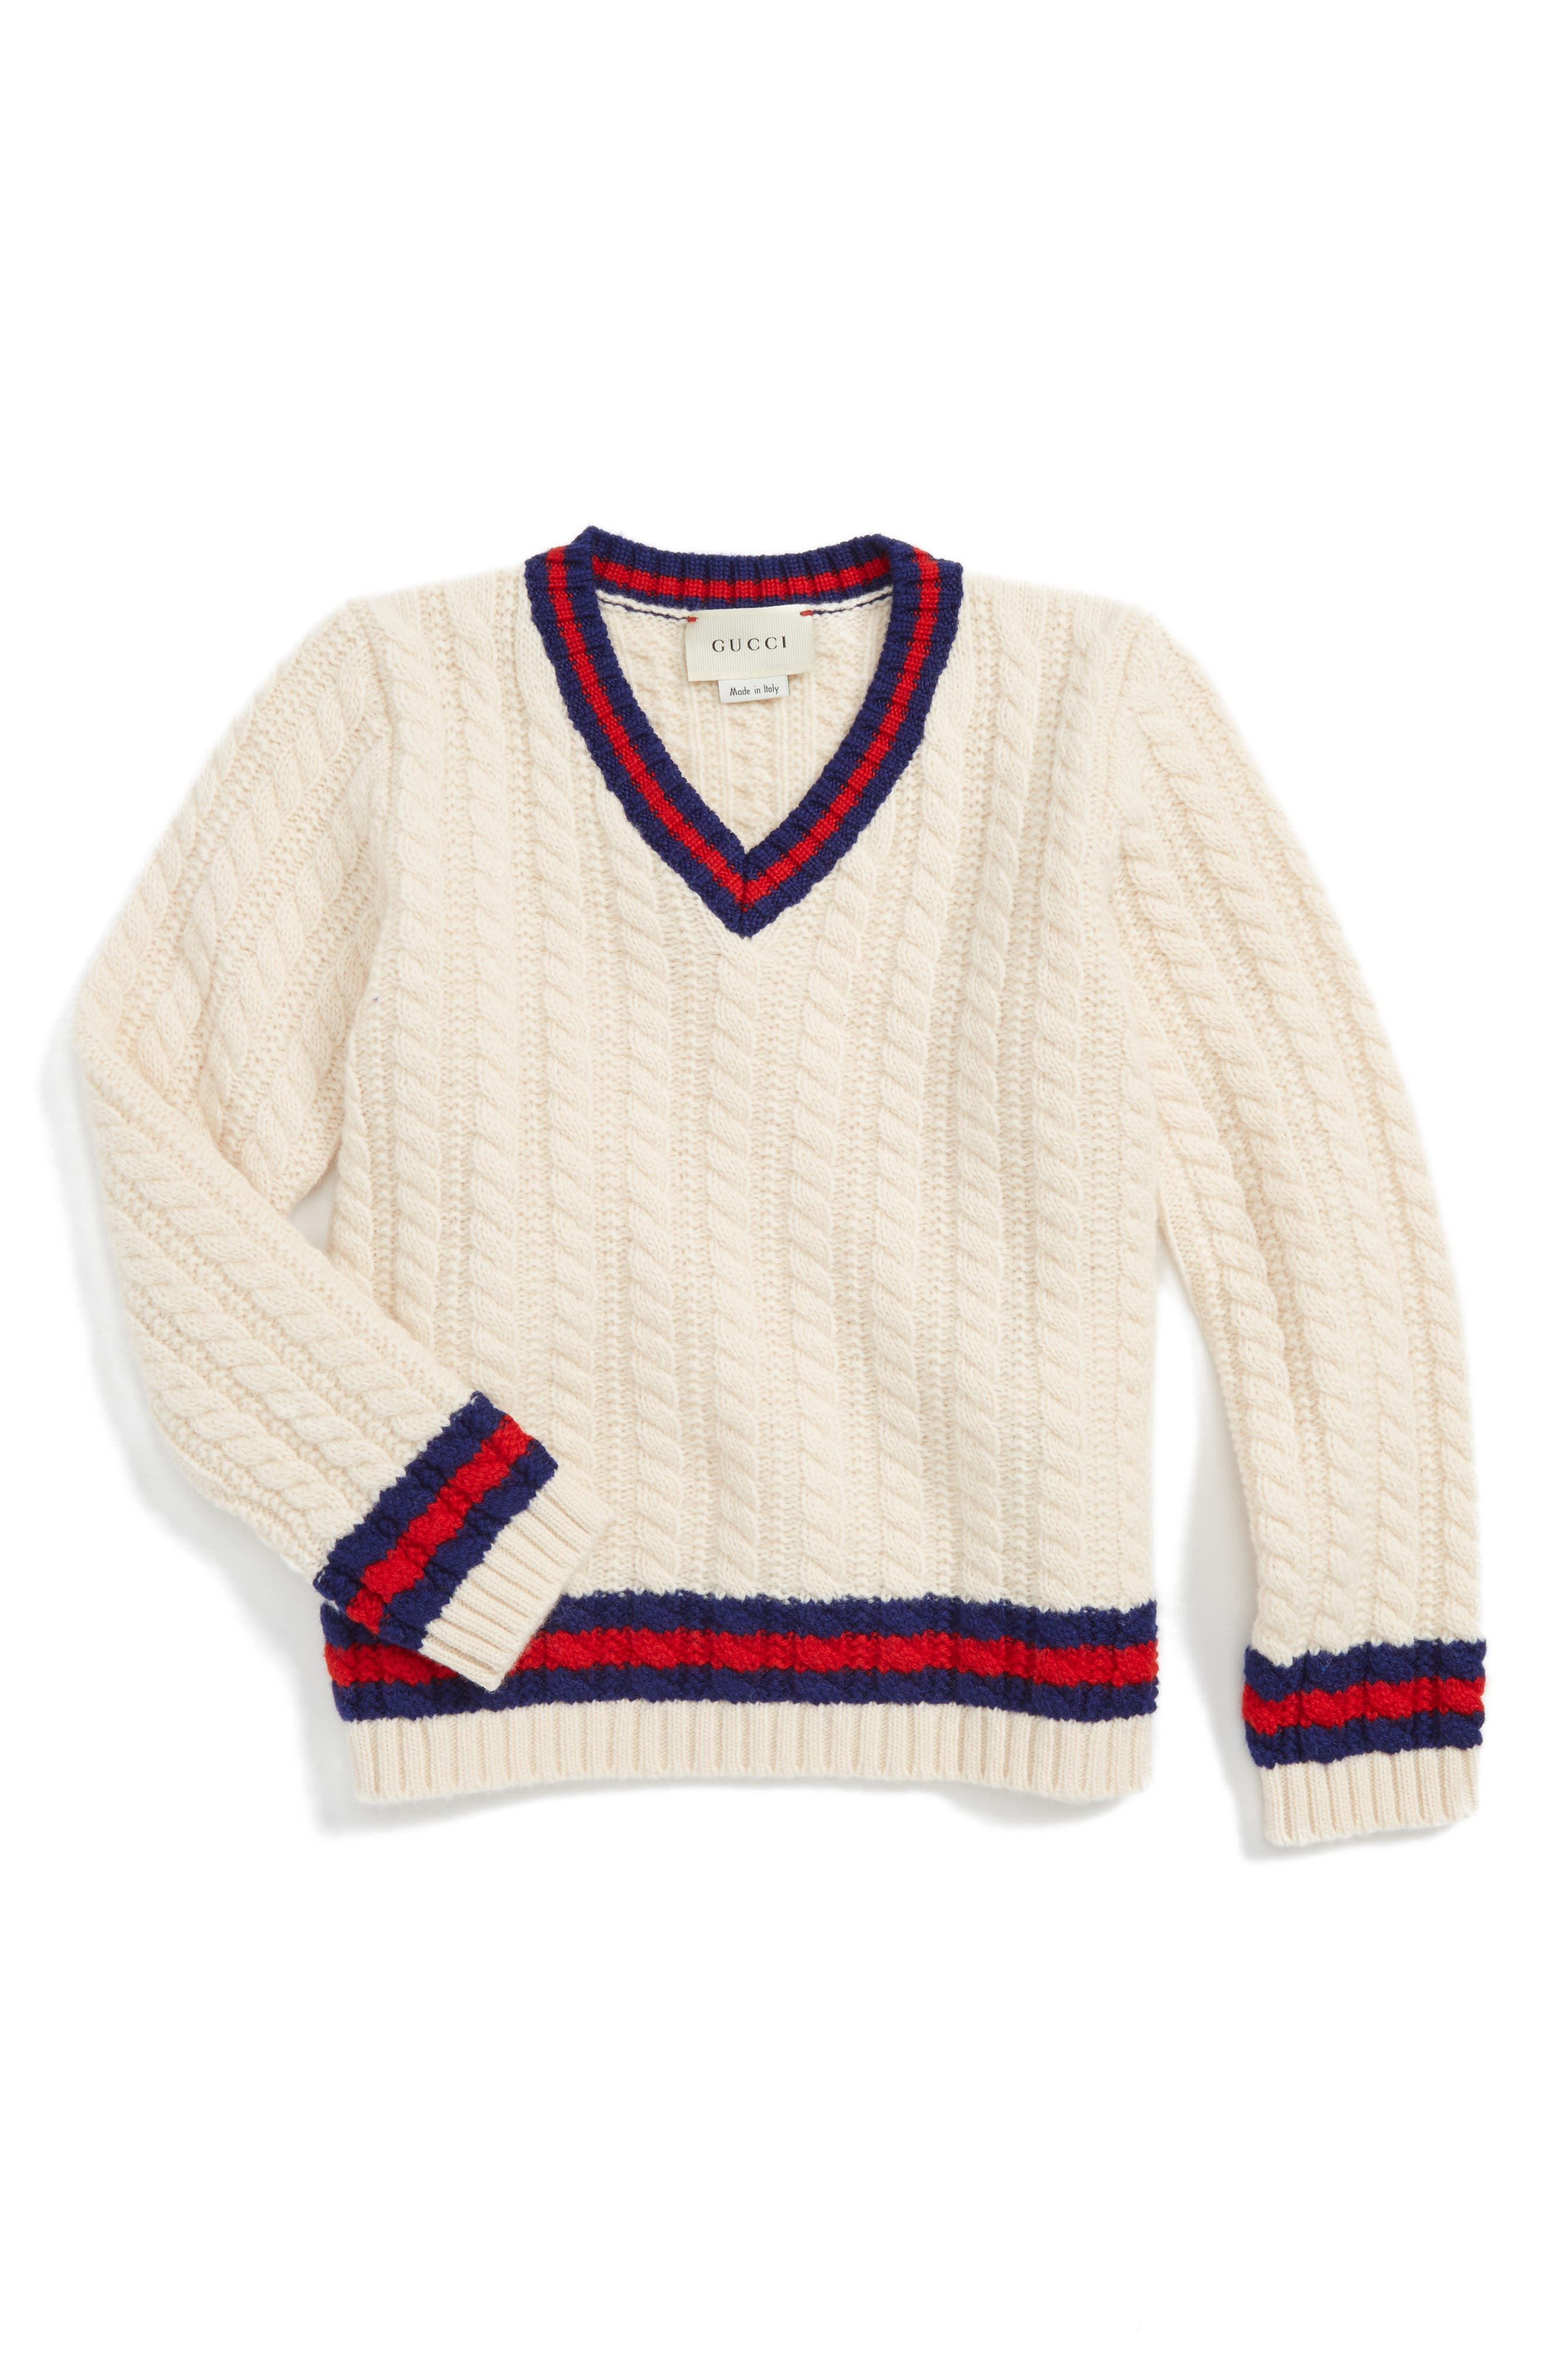 Cable Knit Wool Sweater,                             Main thumbnail 1, color,                             900